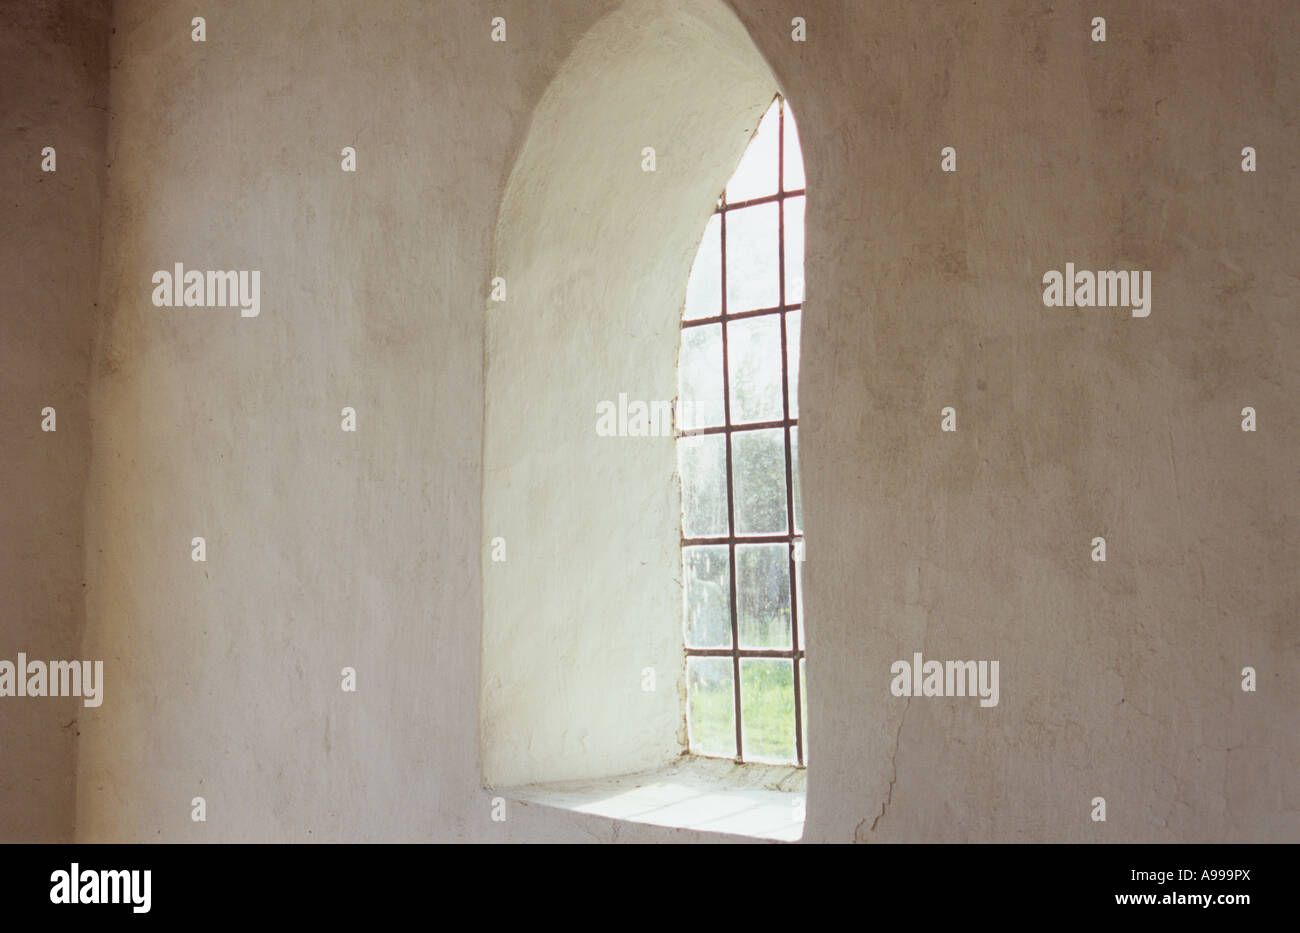 Interior view of small room or lobby or porch or hall or hallway with plain cream walls and square leaded arched window